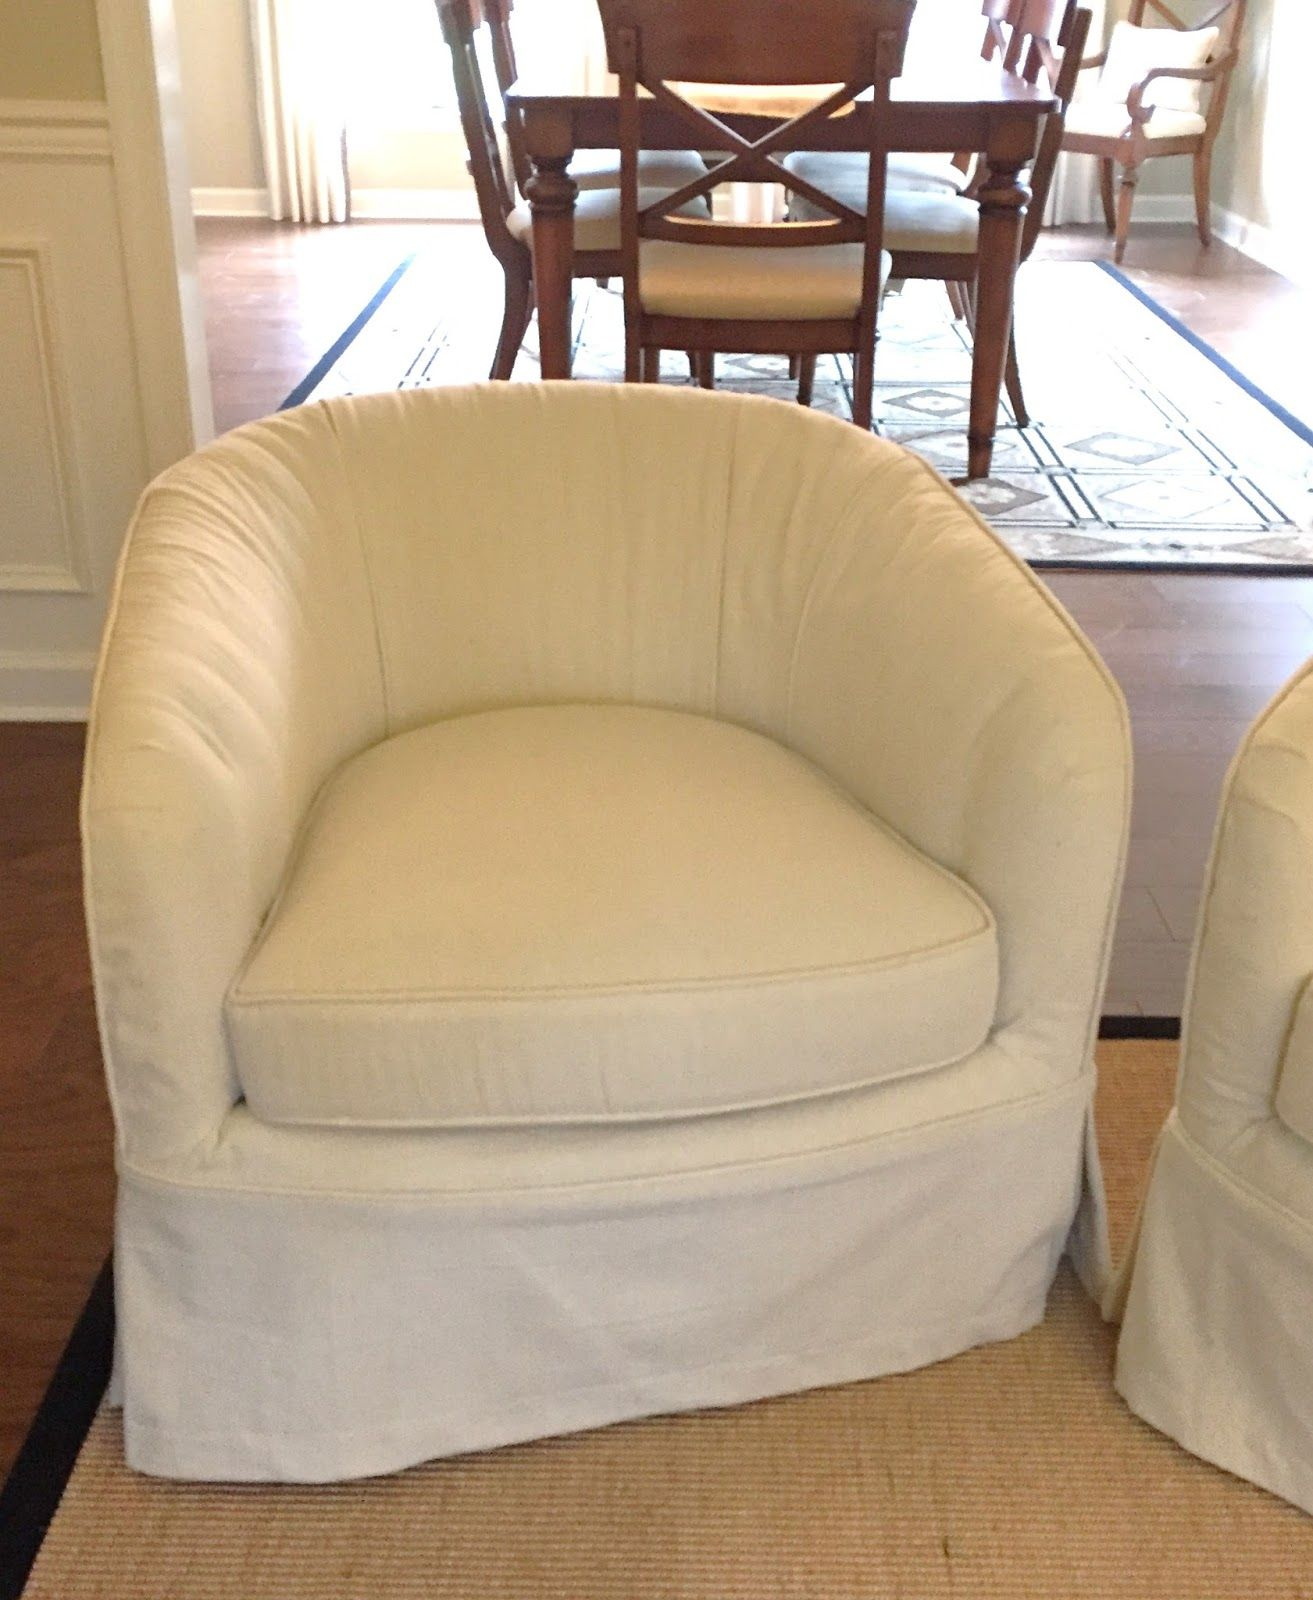 Dramatic Rescue With Drop Cloths Slipcovers For Chairs Reupholster Furniture Swivel Barrel Chair